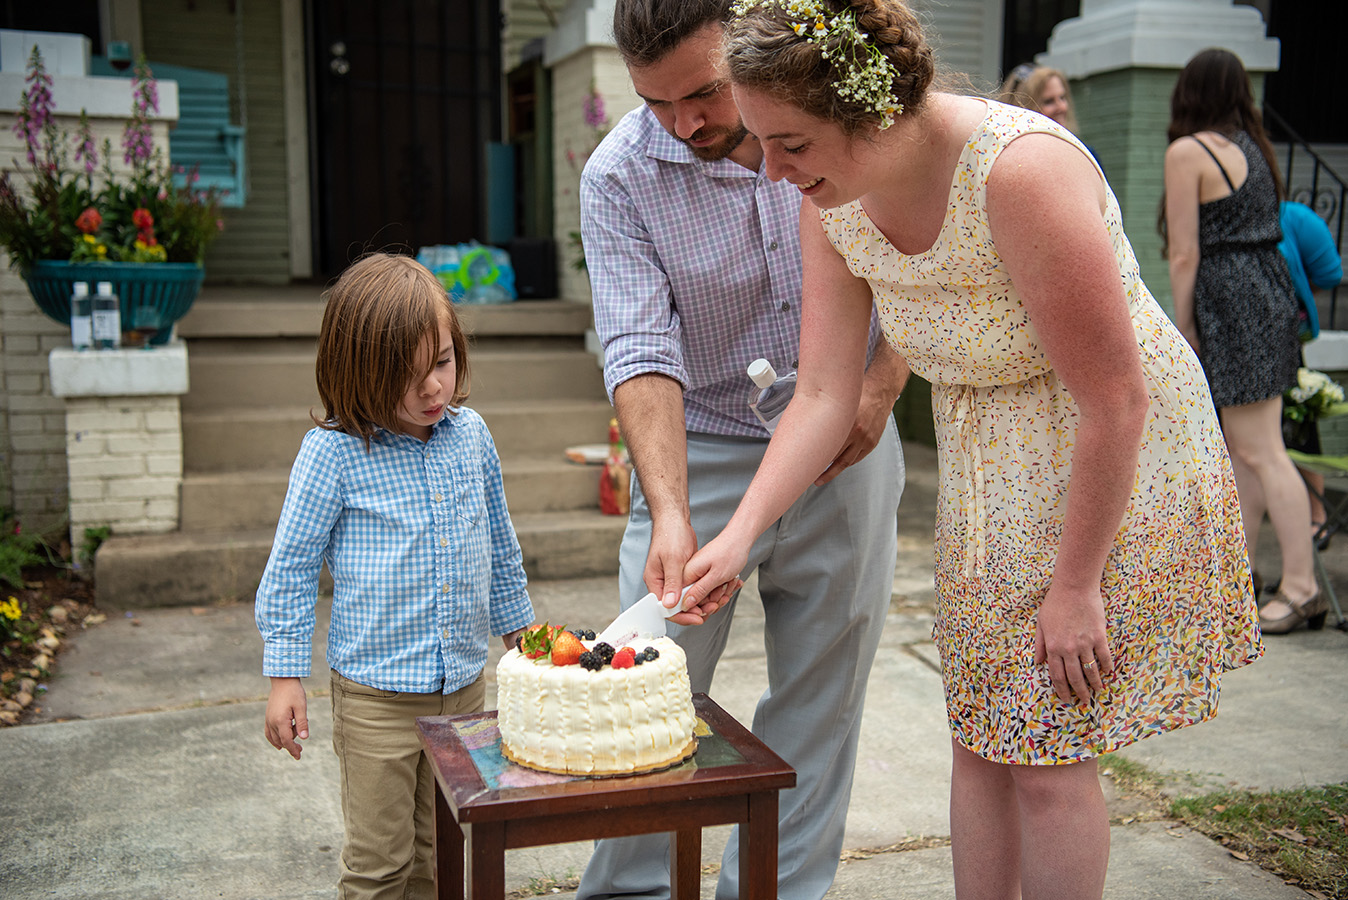 Elizabeth and Greg cut their Berry Chantilly wedding cake from Bywater Bakery with their son Frank watching.